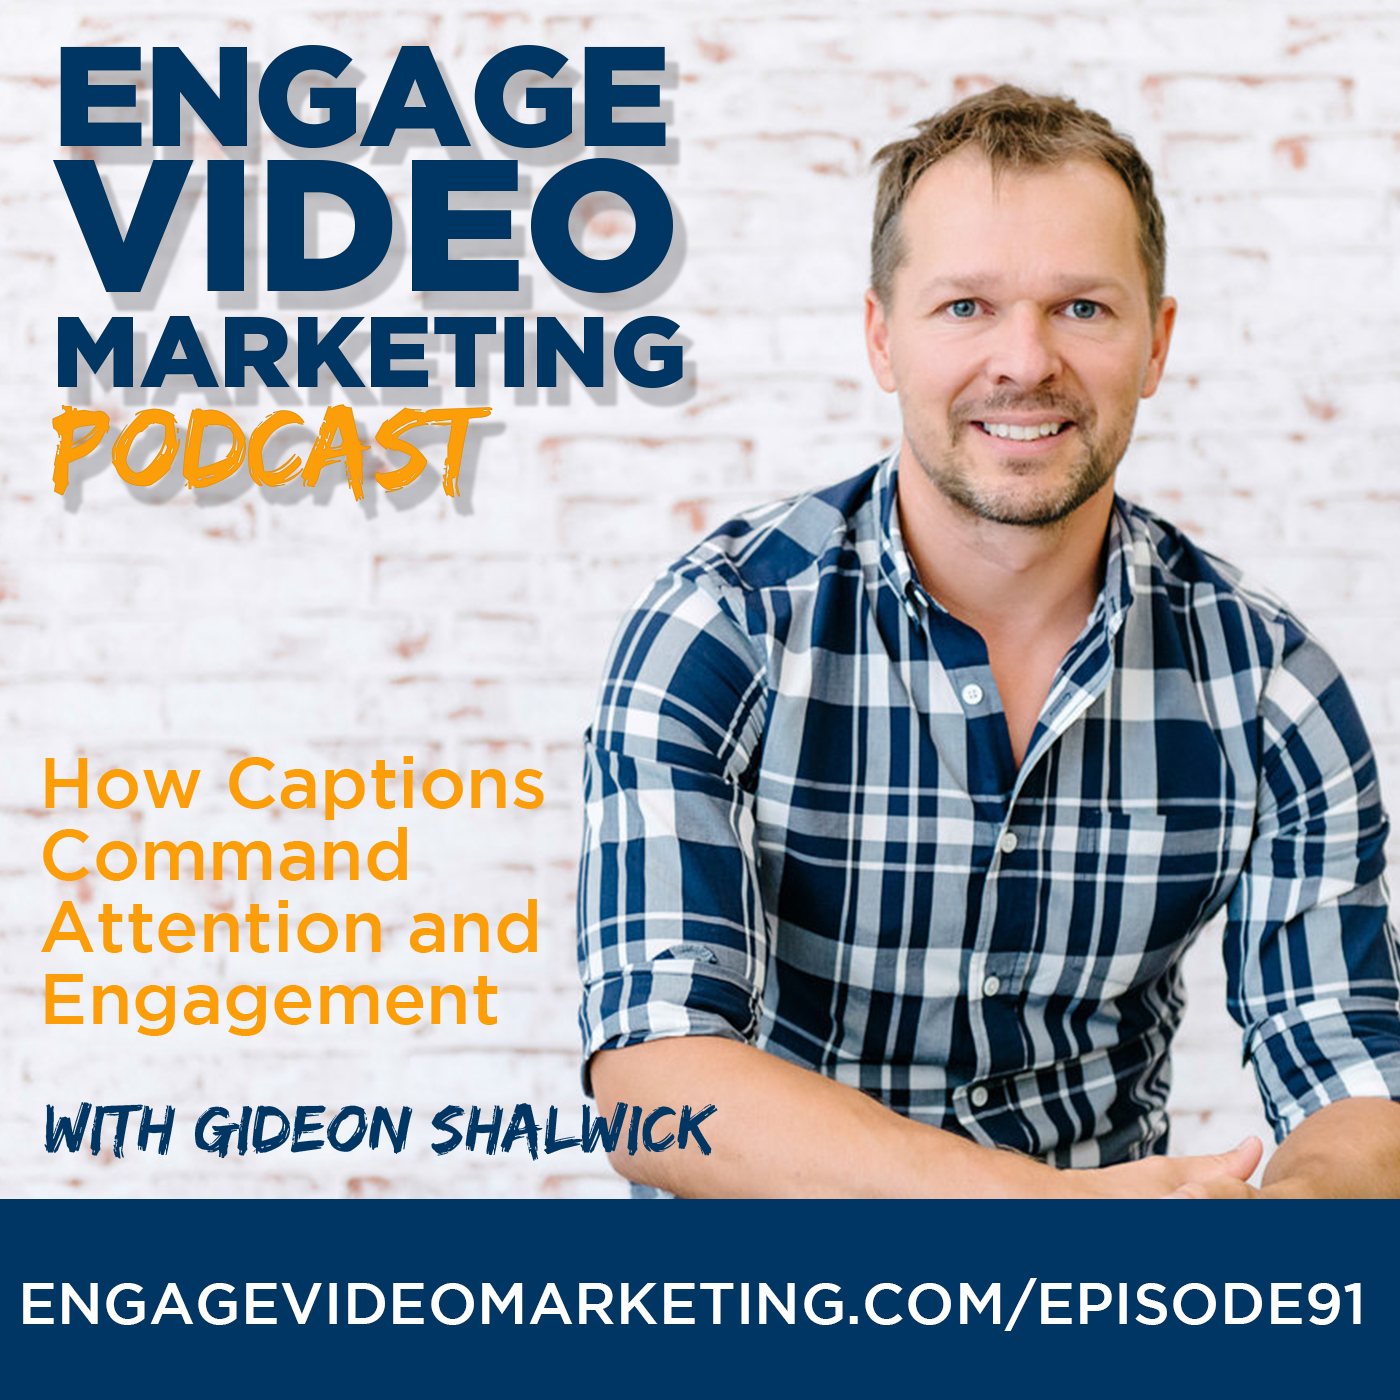 How Captions Command Attention and Engagement with Gideon Shalwick